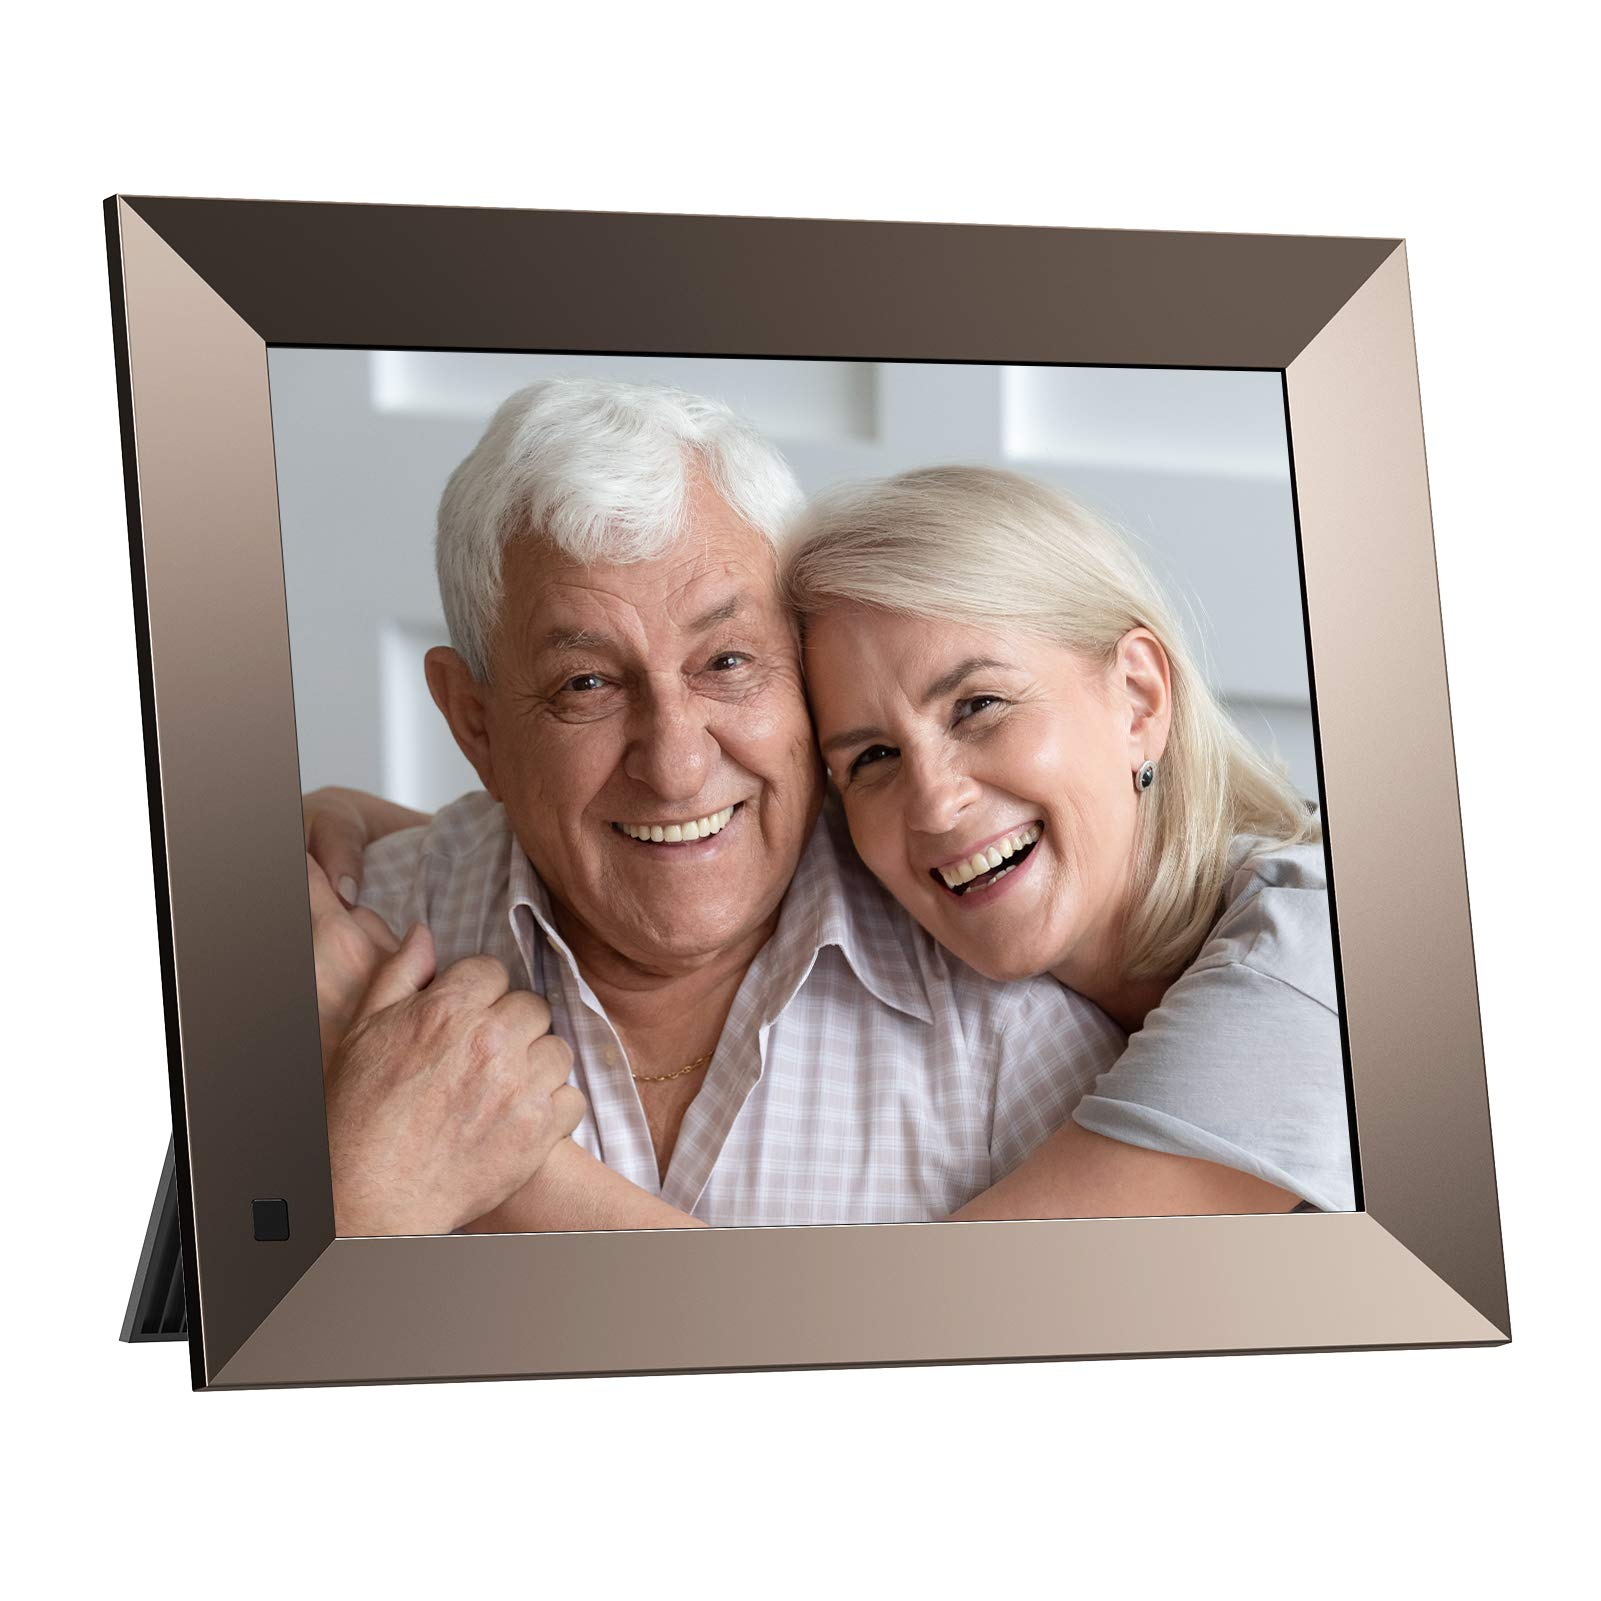 Dragon Touch WiFi Digital Picture Frame, 10 Inch IPS Touch Screen HD Display, Magnetic Stand, 16GB Storage, Motion Sensor, Auto-Rotate, Share Photos and Videos via App or E-Mail (Classic 10 Elite)